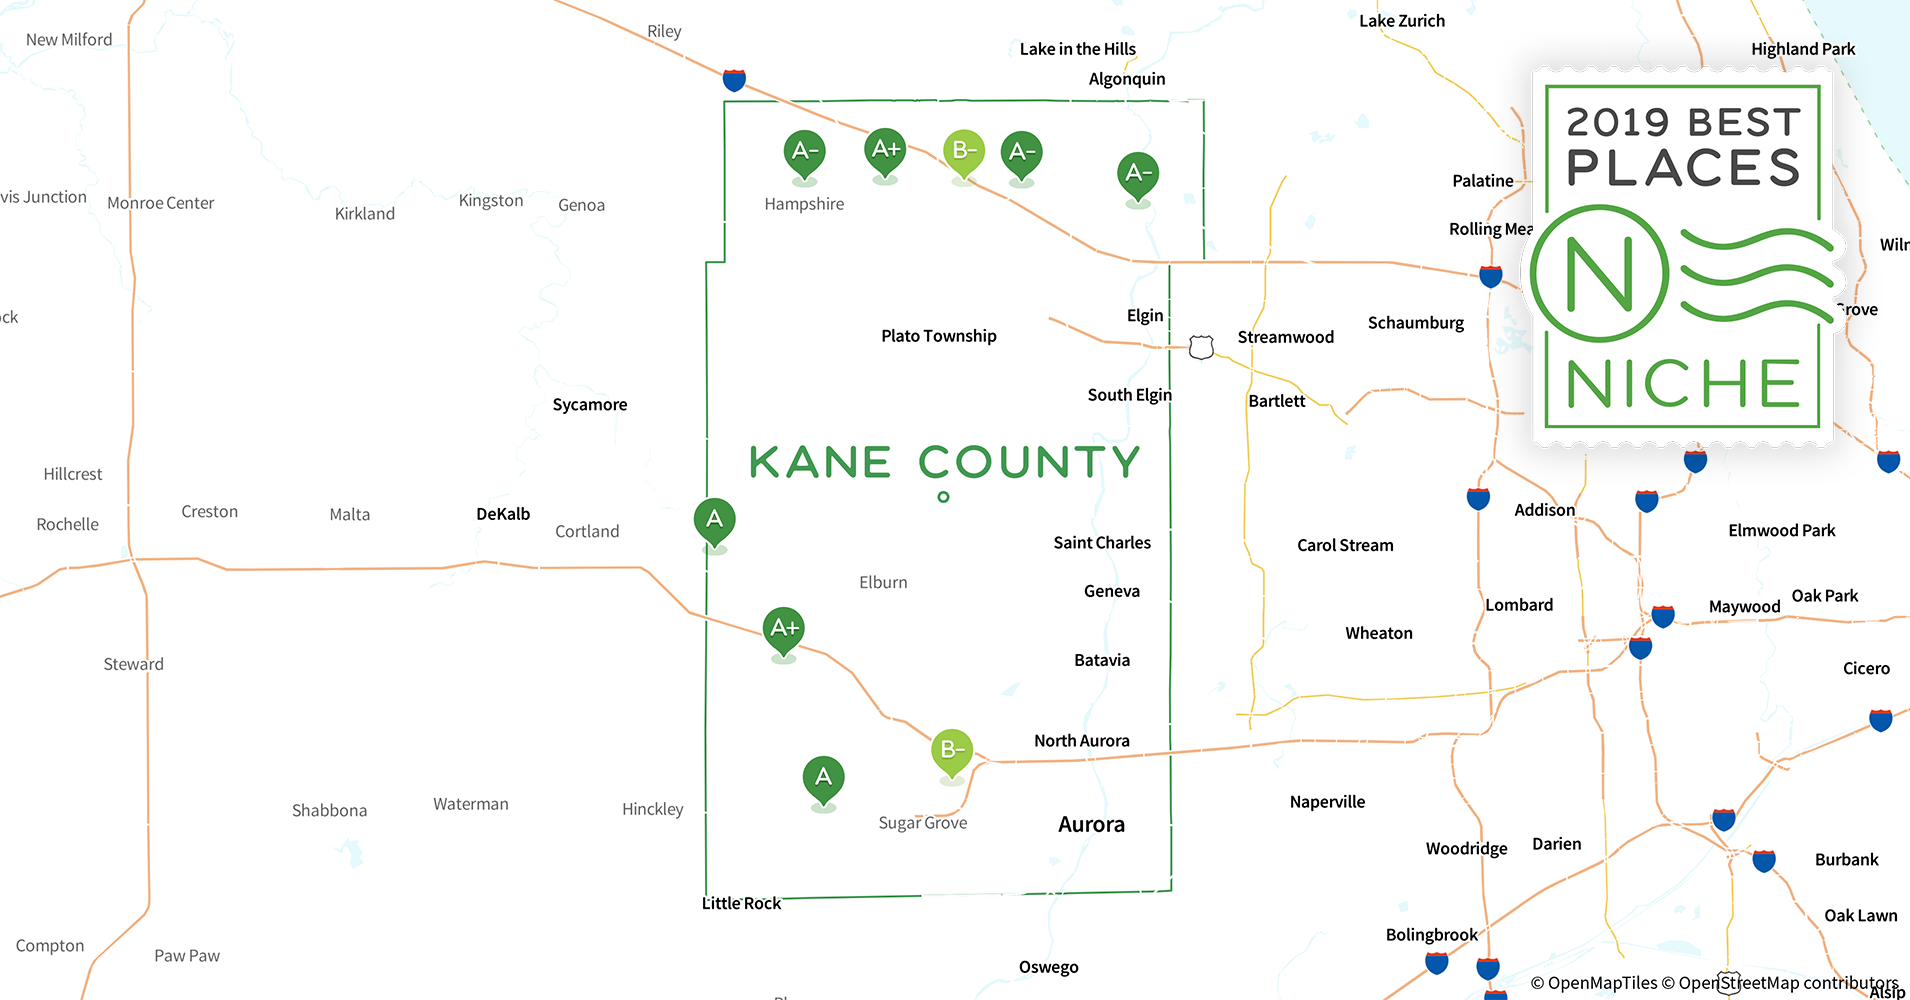 2019 Best Places to Live in Kane County, IL - Niche Kane County Il Map Of Counties on map of union county il, map of stark county il, map of henderson county il, map of dupage county il, map of st. clair county il, towns in kane county il, map of rock island county il, map of richland county il, map of cook county il, map of stephenson county il, map of jasper county il, map of bond county il, map of mcdonough county il, map of schuyler county il, map of franklin county il, map of woodford county il, map of gallatin county il, map of jo daviess county il, map of jersey county il, map of lake county il,